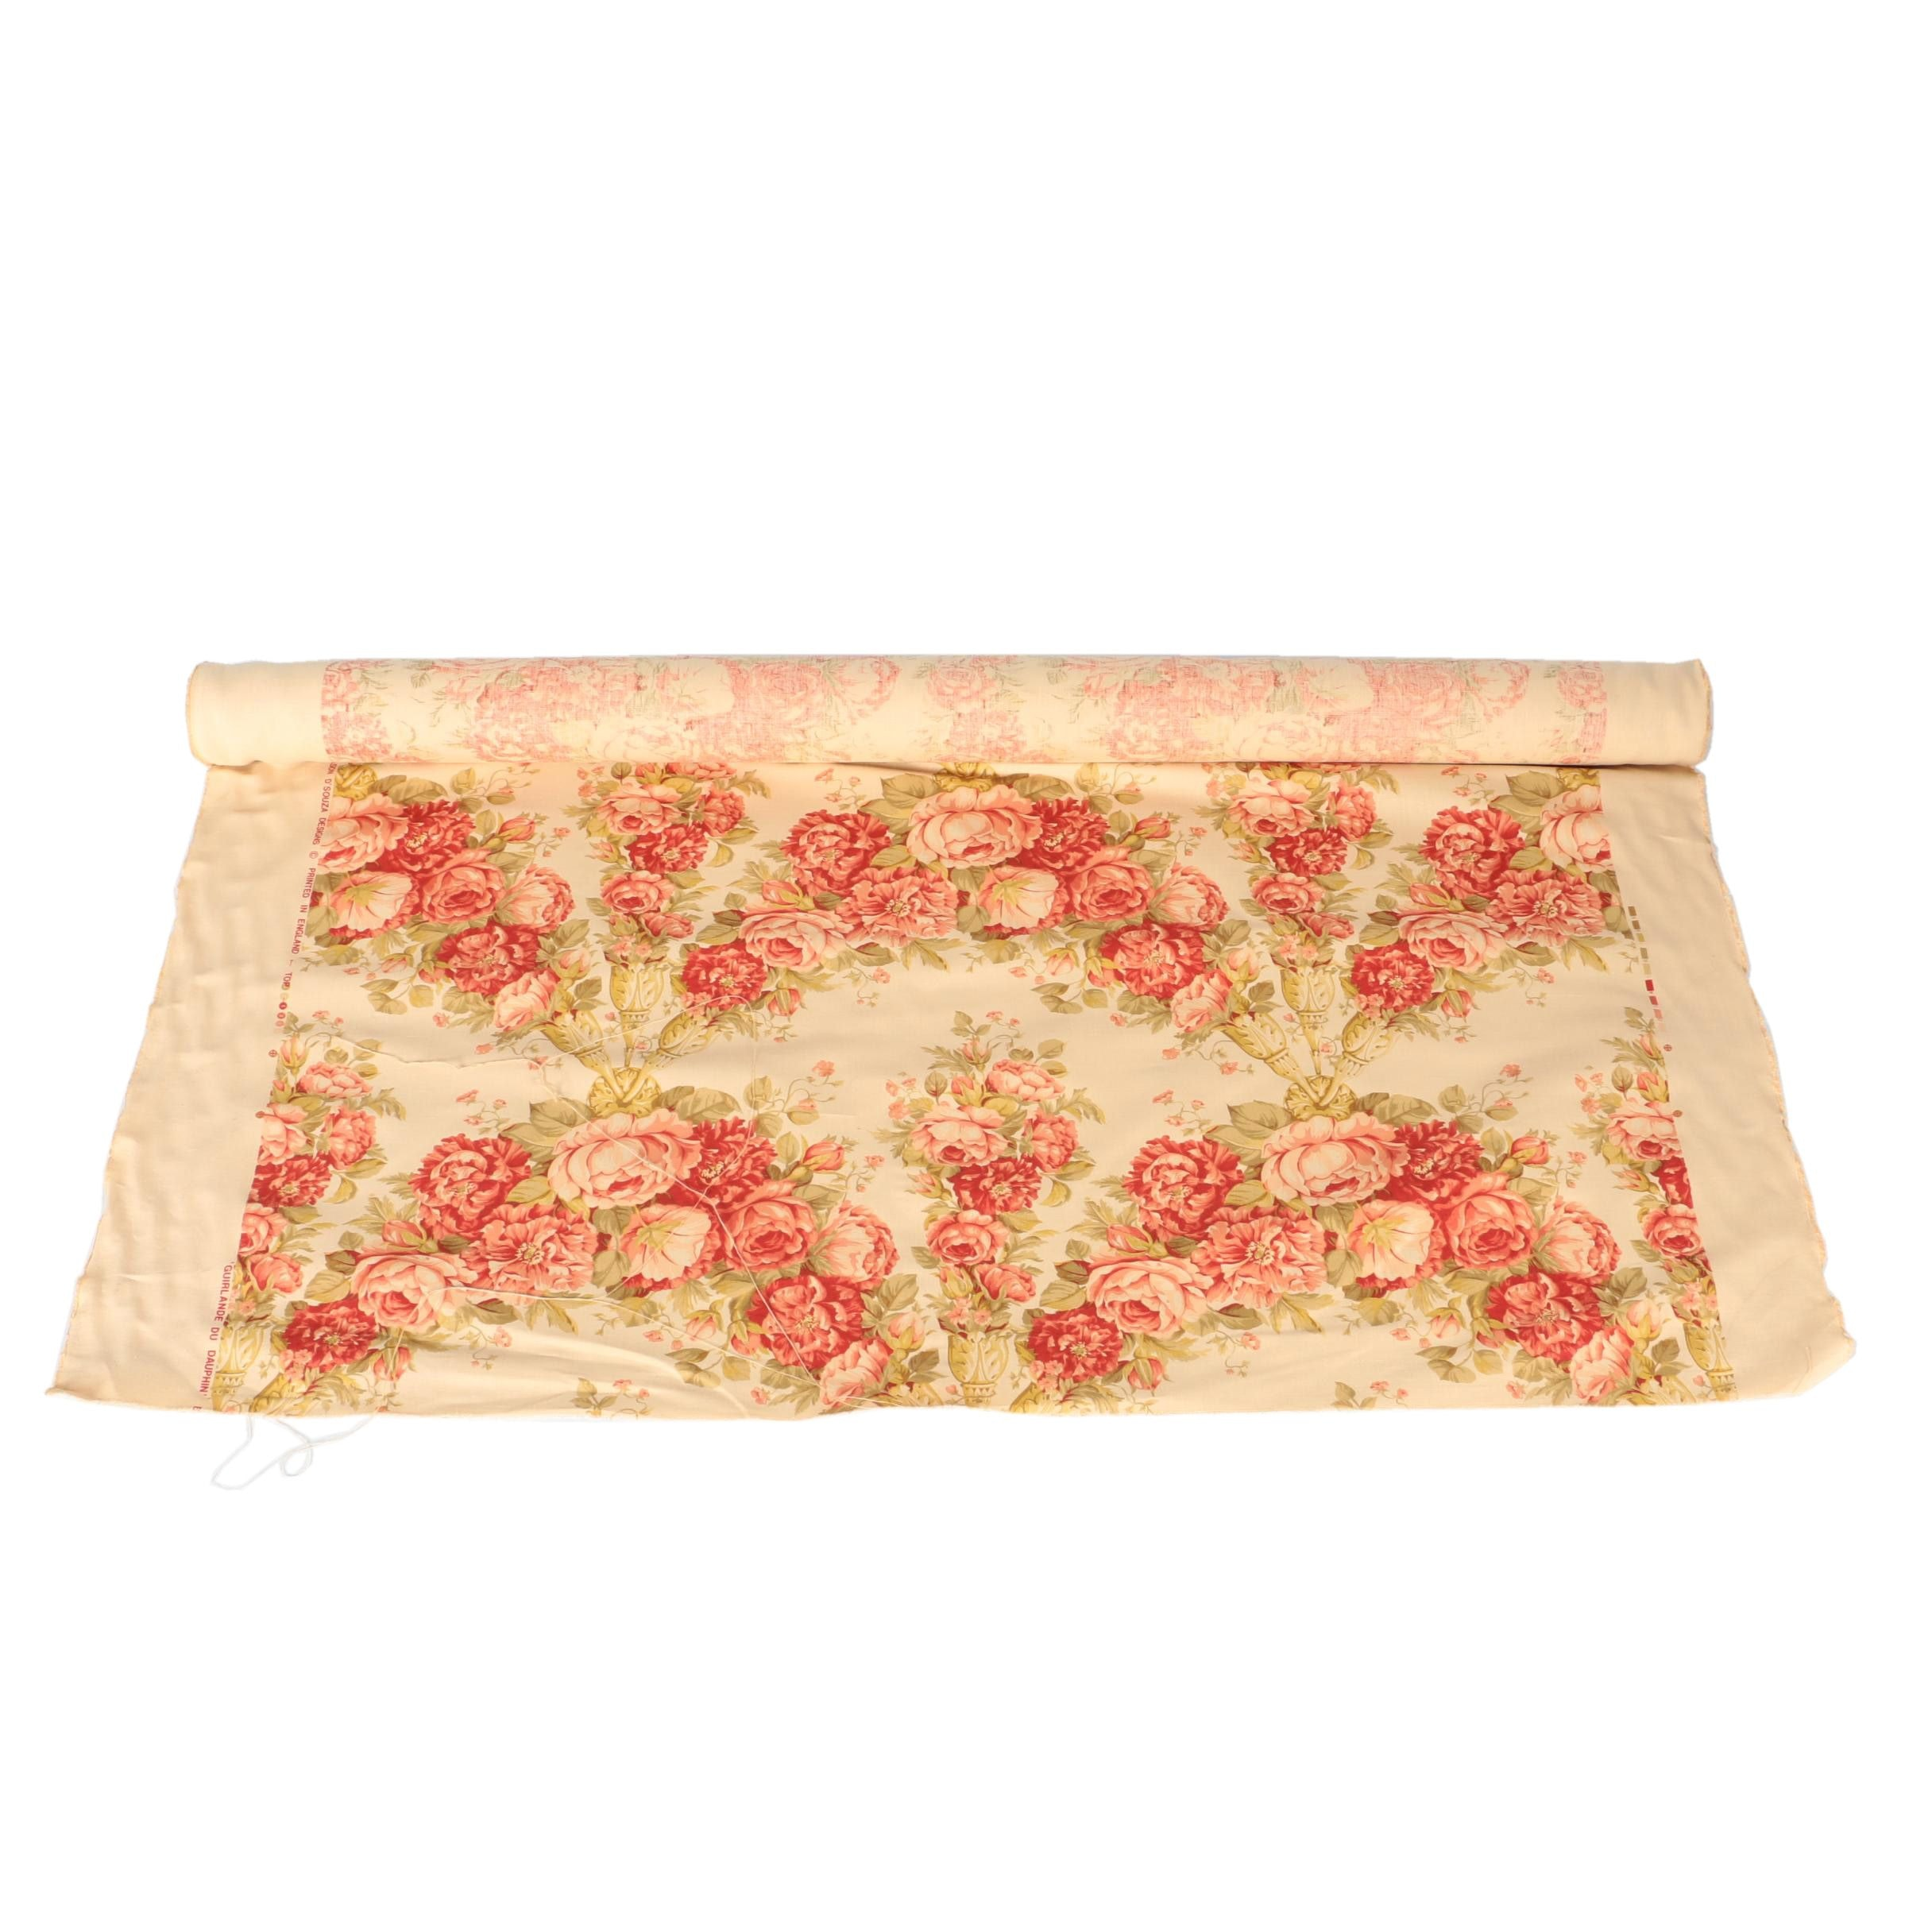 English Floral Print Fabric